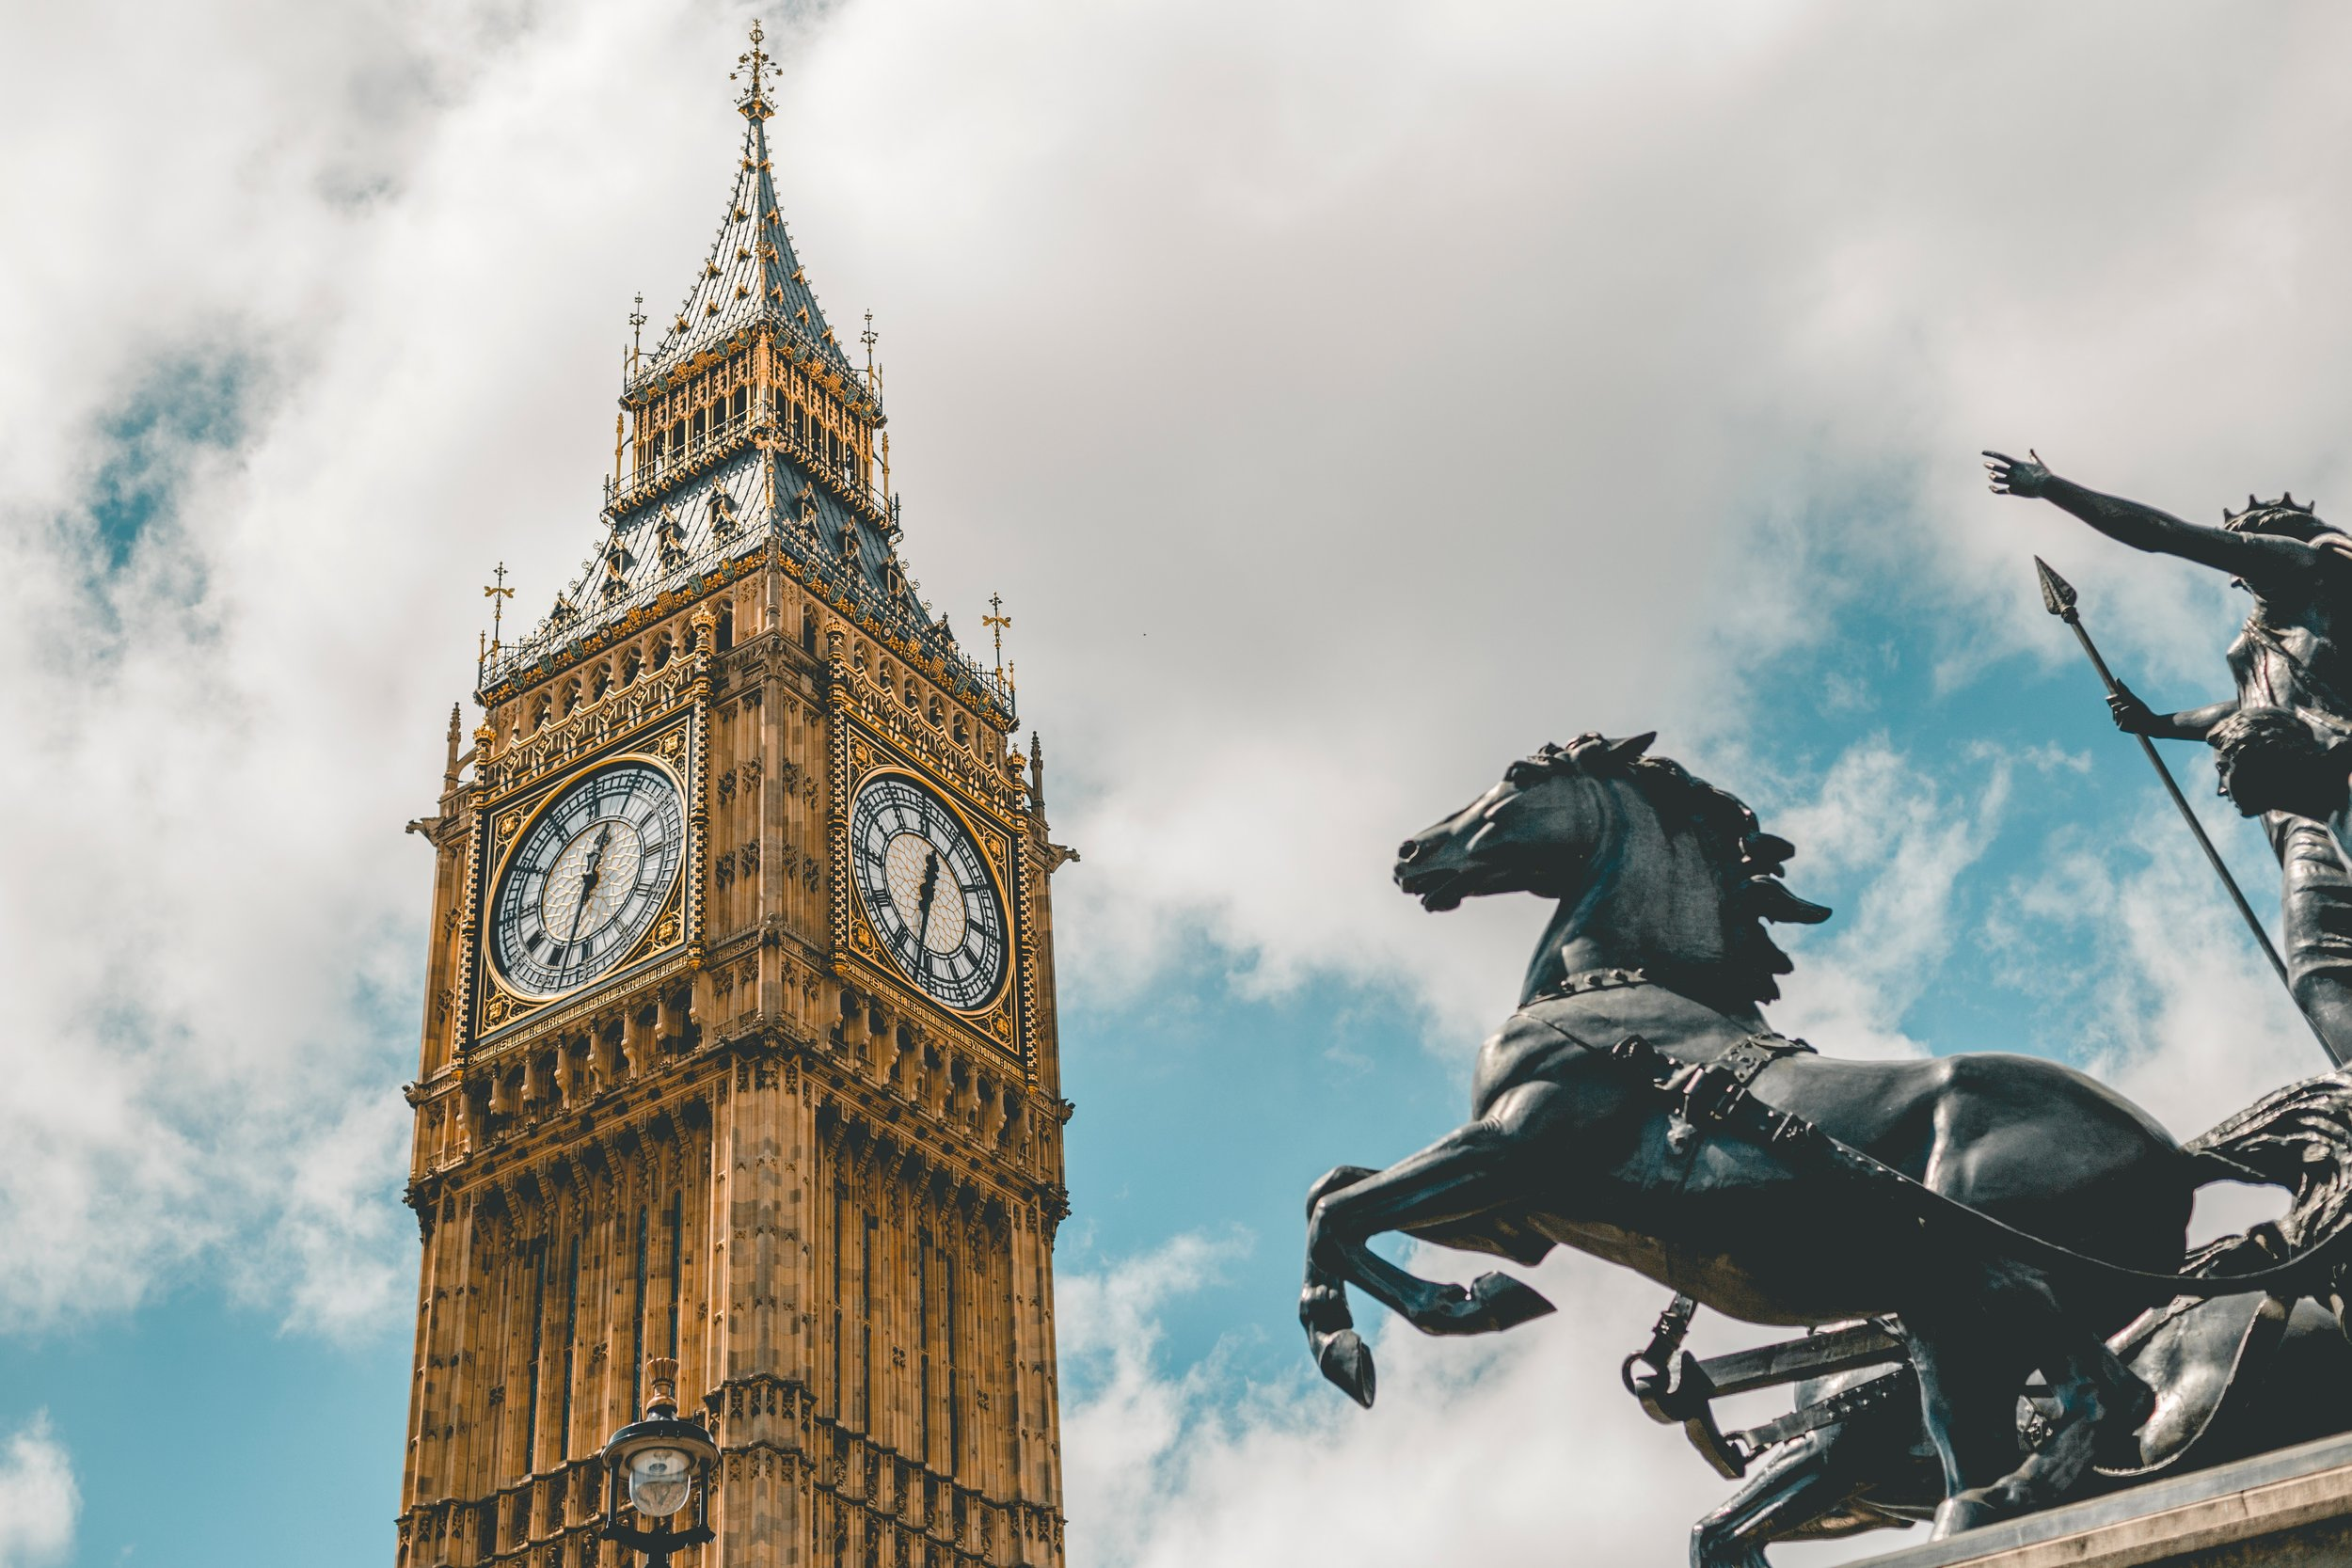 Big ben is one of the best places to visit in London